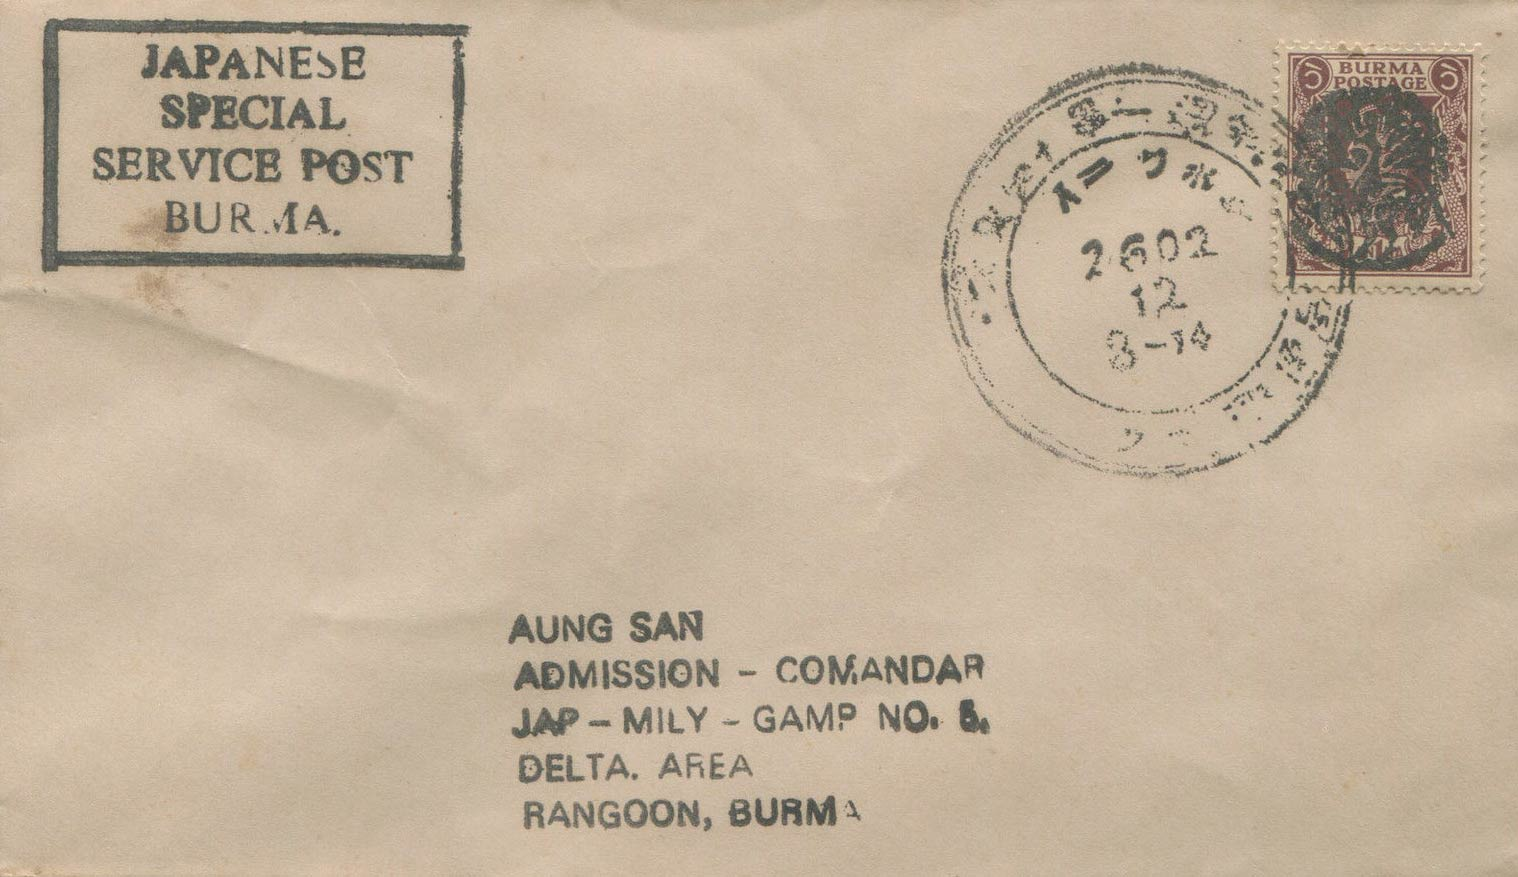 Burma_Japanese-Special-Service-Post_Cover_Forgery7